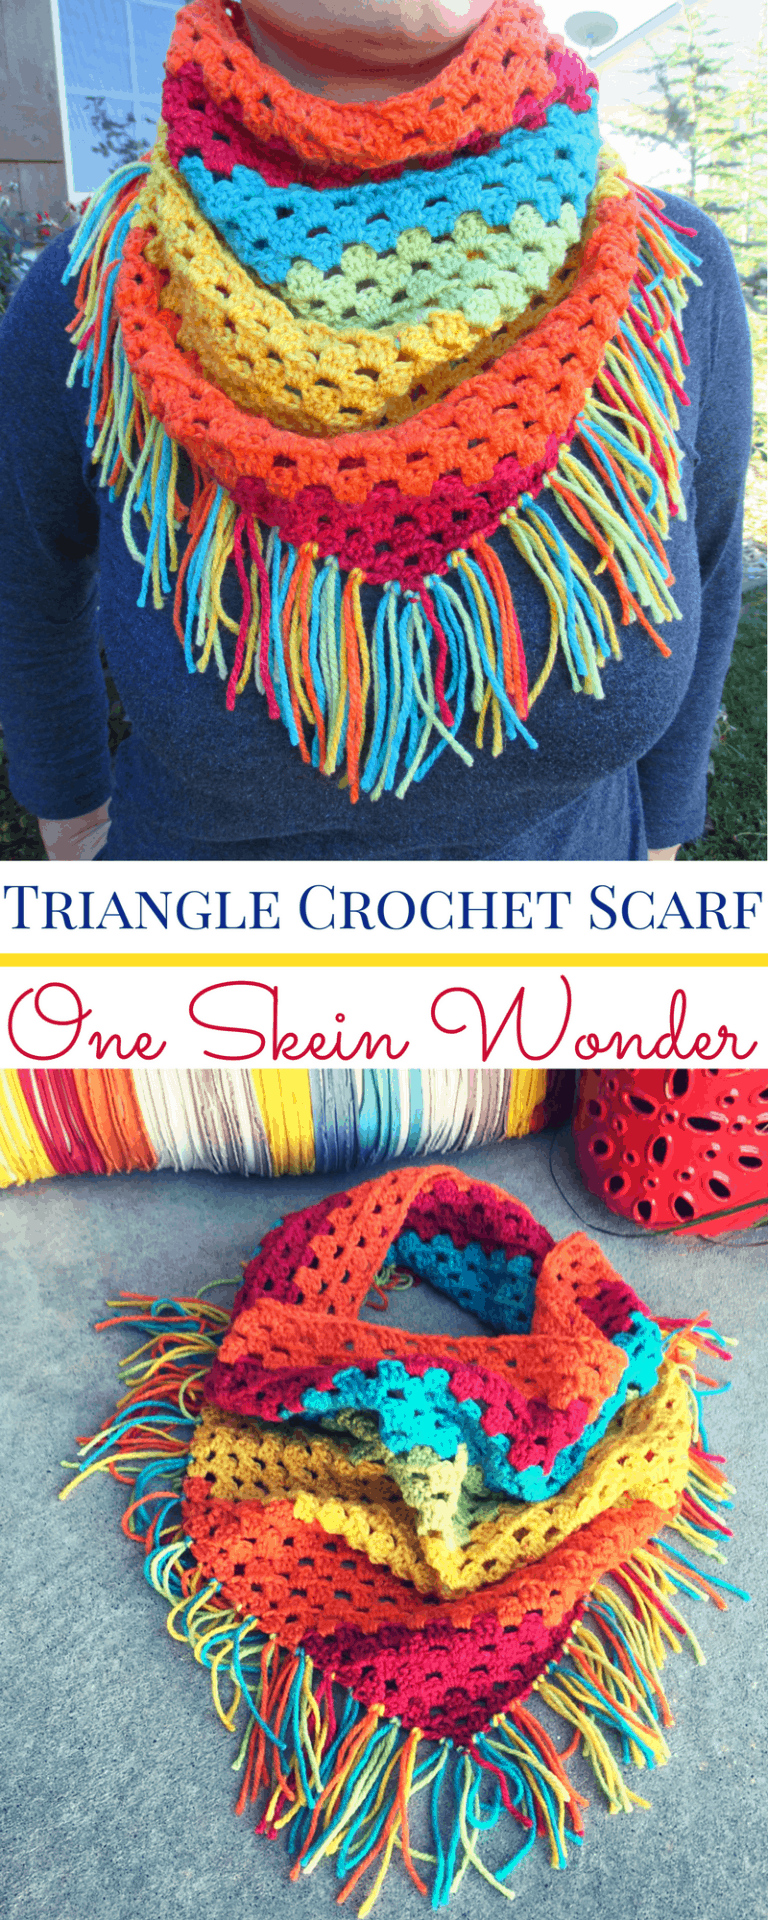 Triangle Crochet Scarf with Fringe Pattern